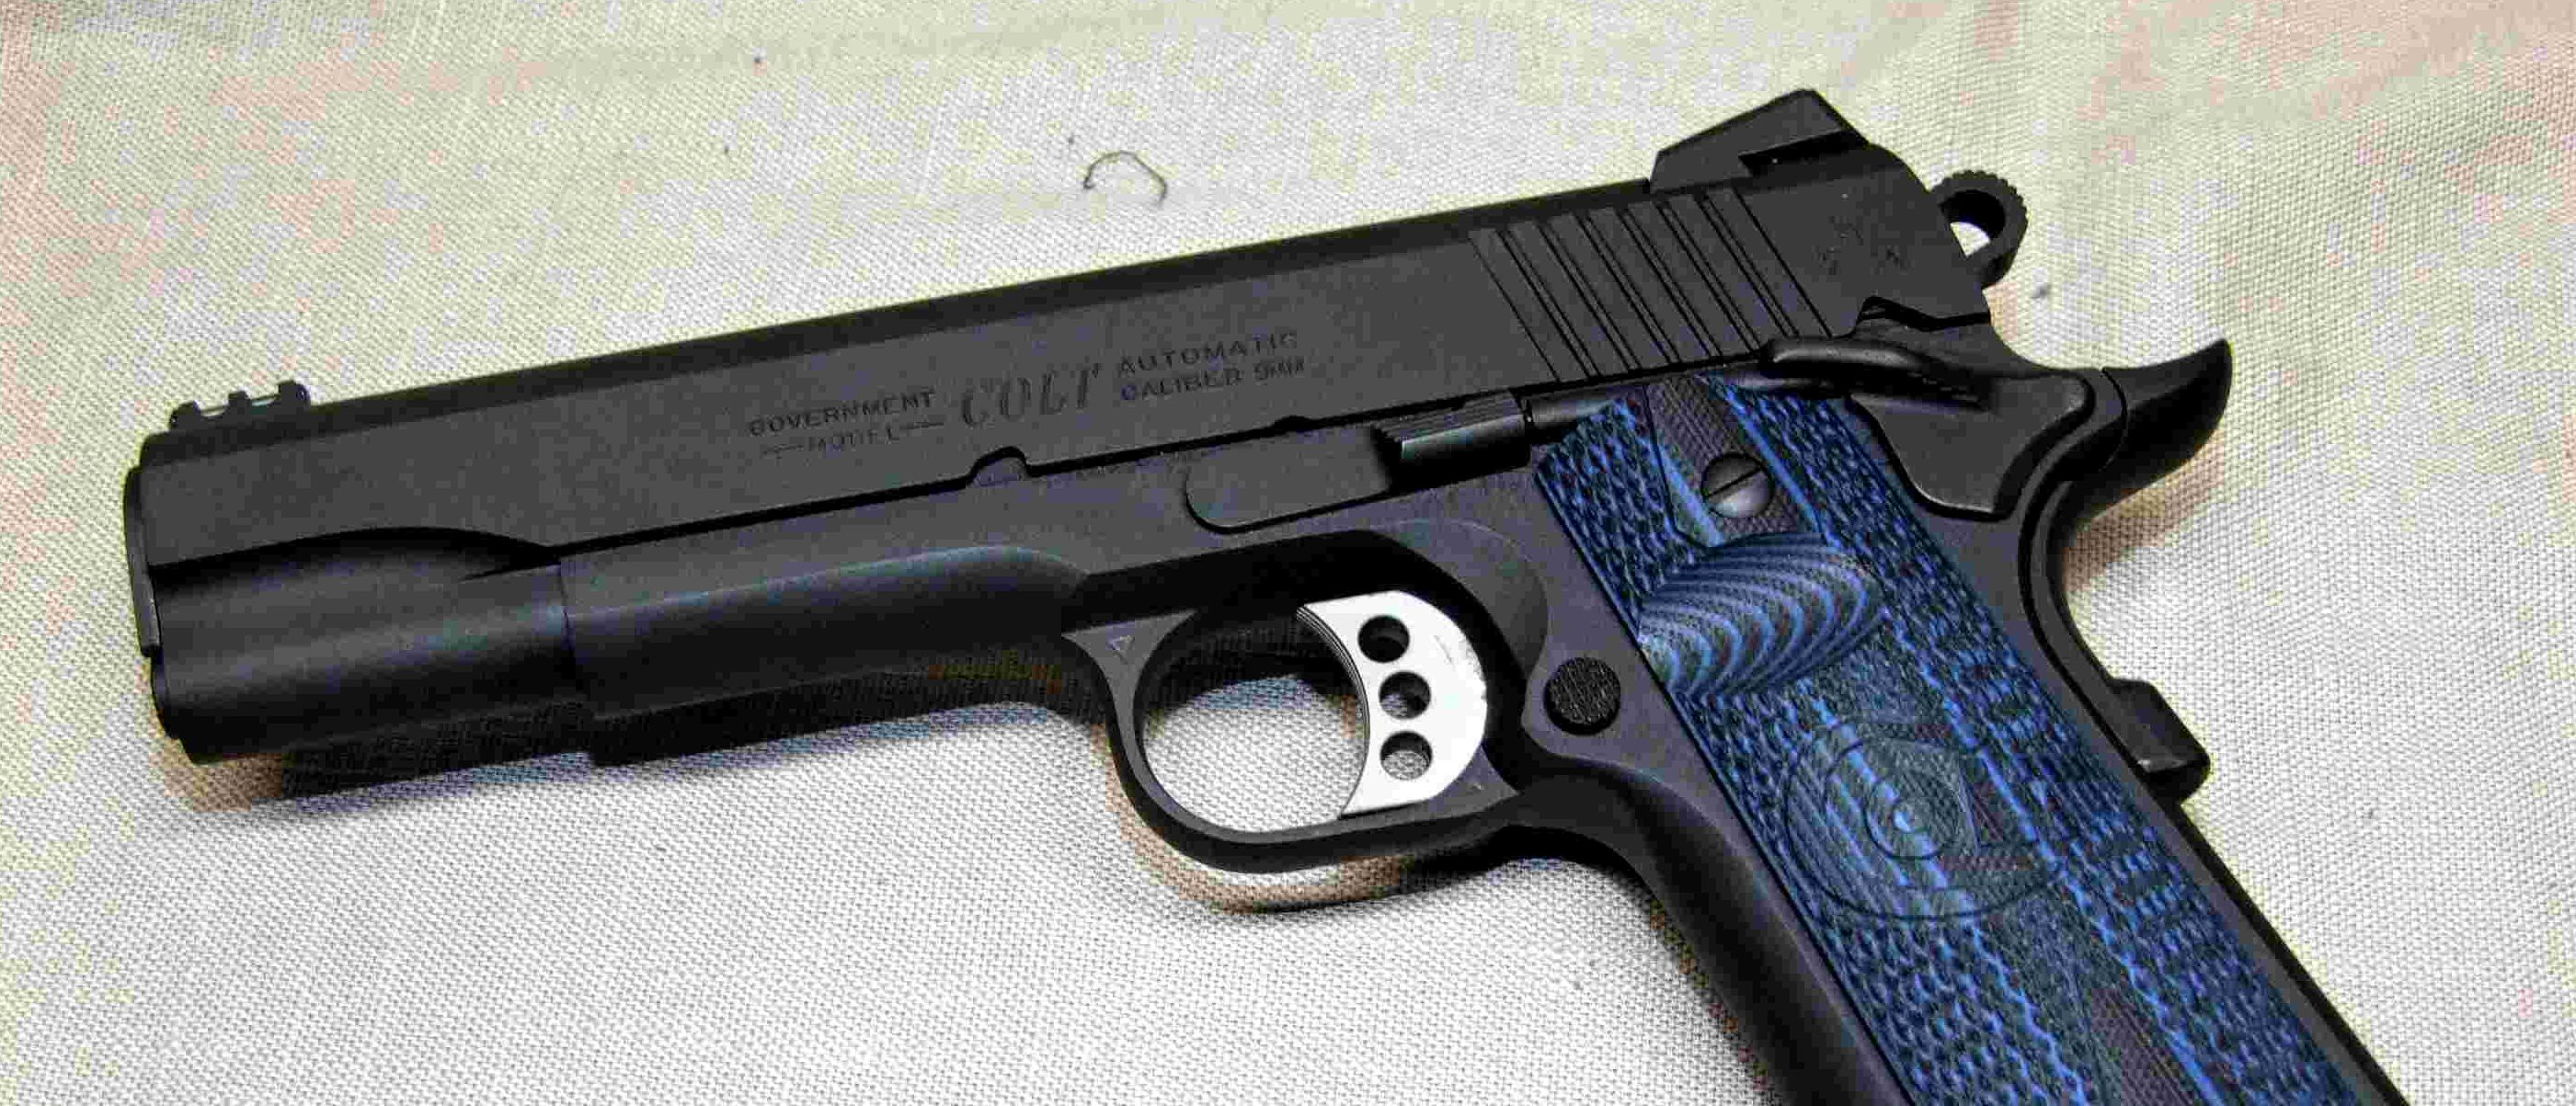 Gun Test: Colt Competition Pistol | The Daily Caller